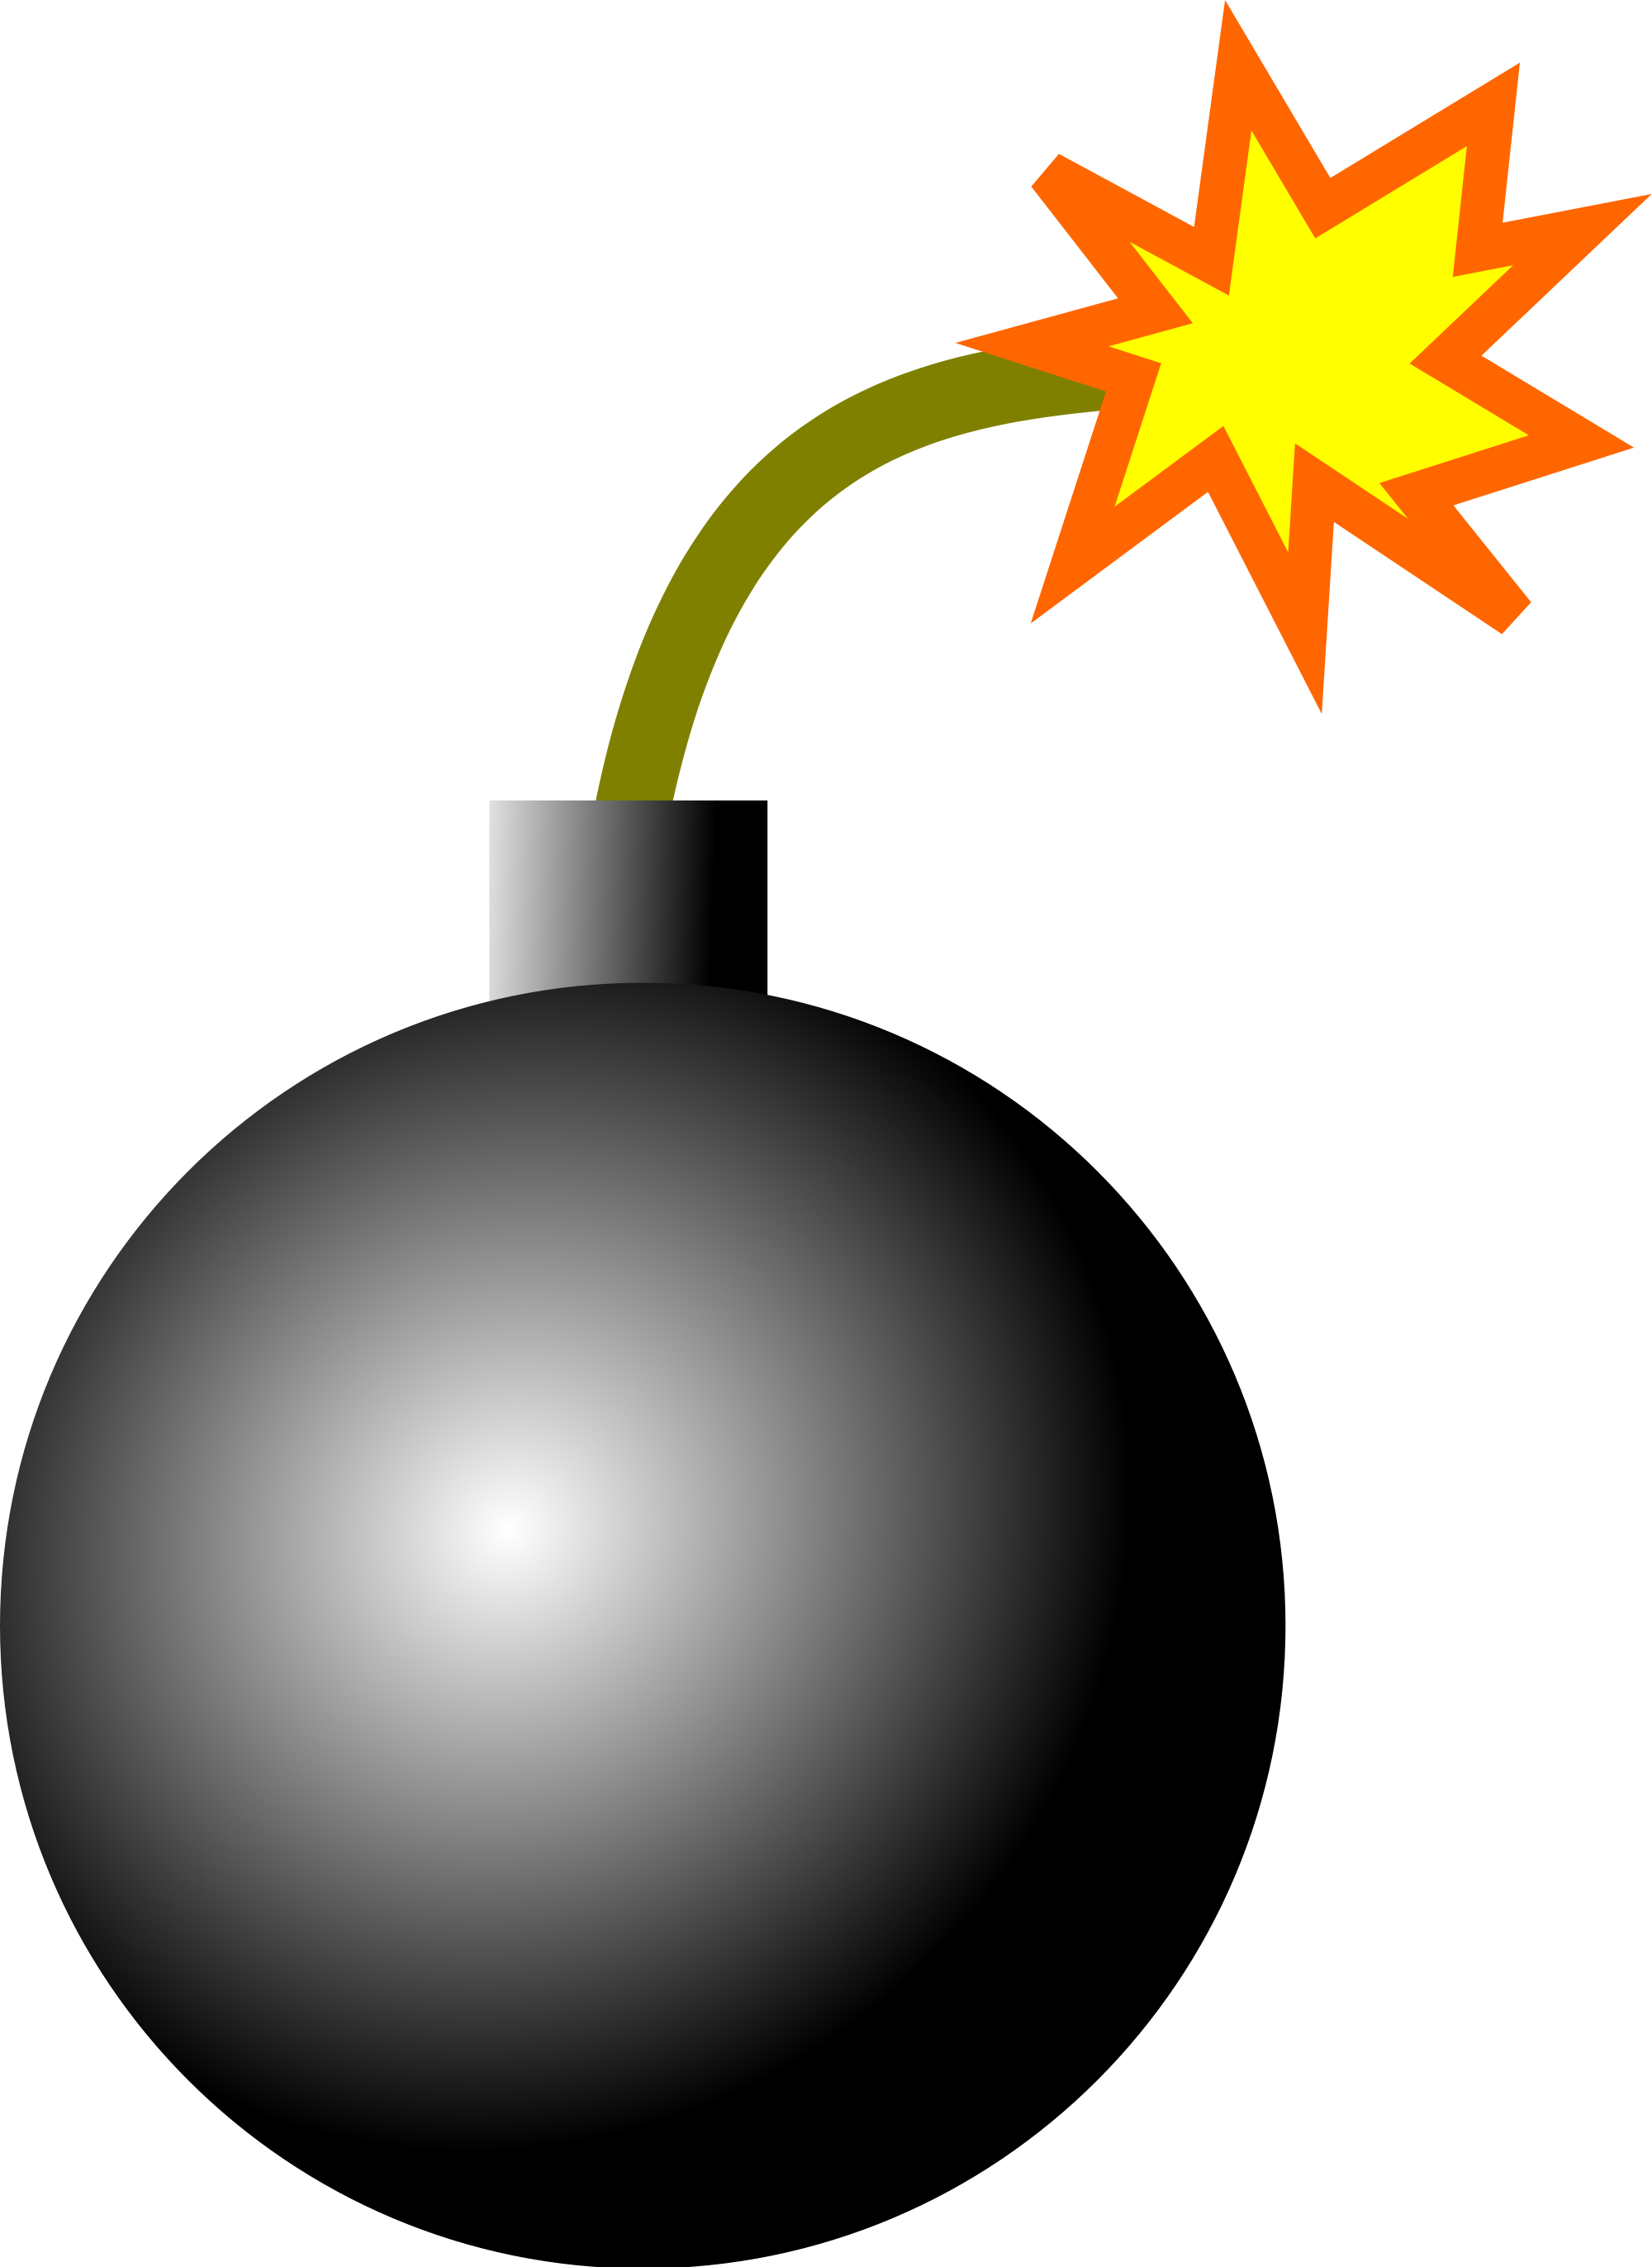 Cartoon bomb png. Images free download